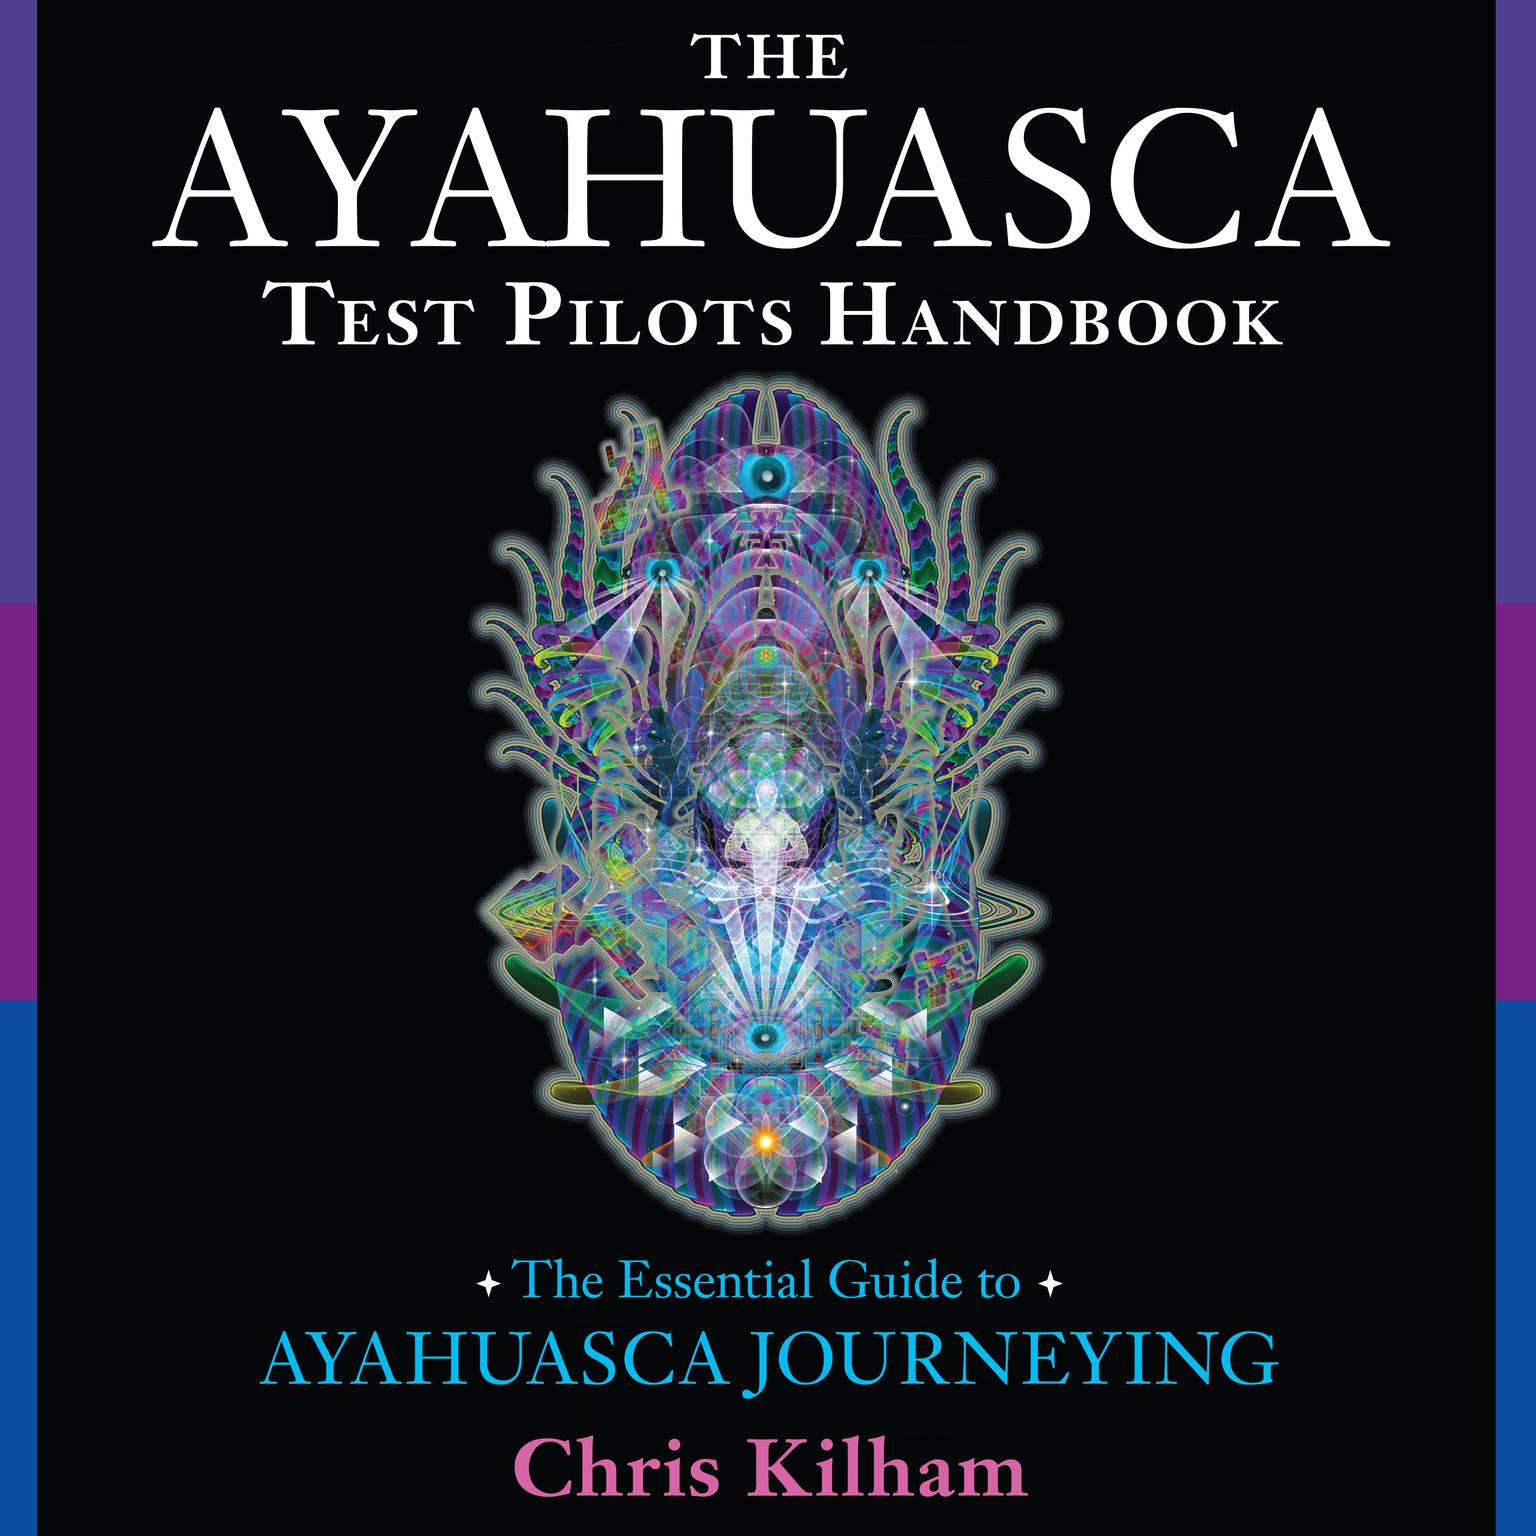 The Ayahuasca Test Pilots Handbook: The Essential Guide to Ayahuasca Journeying Audiobook, by Chris Kilham